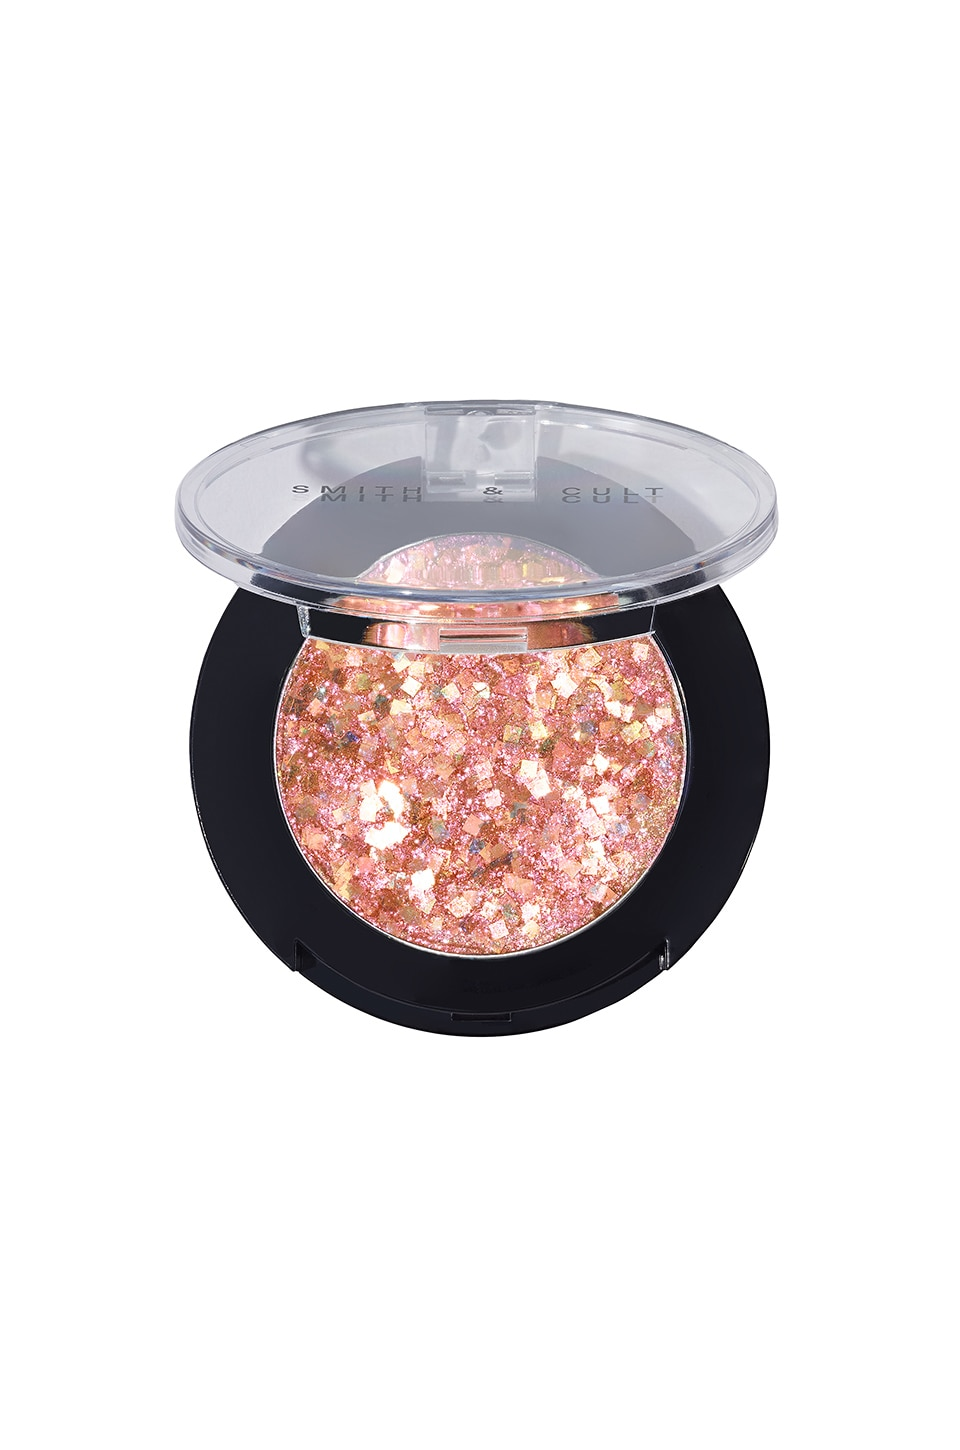 Smith & Cult PAILLETTES VISAGE GLITTER SHOT ALL-OVER